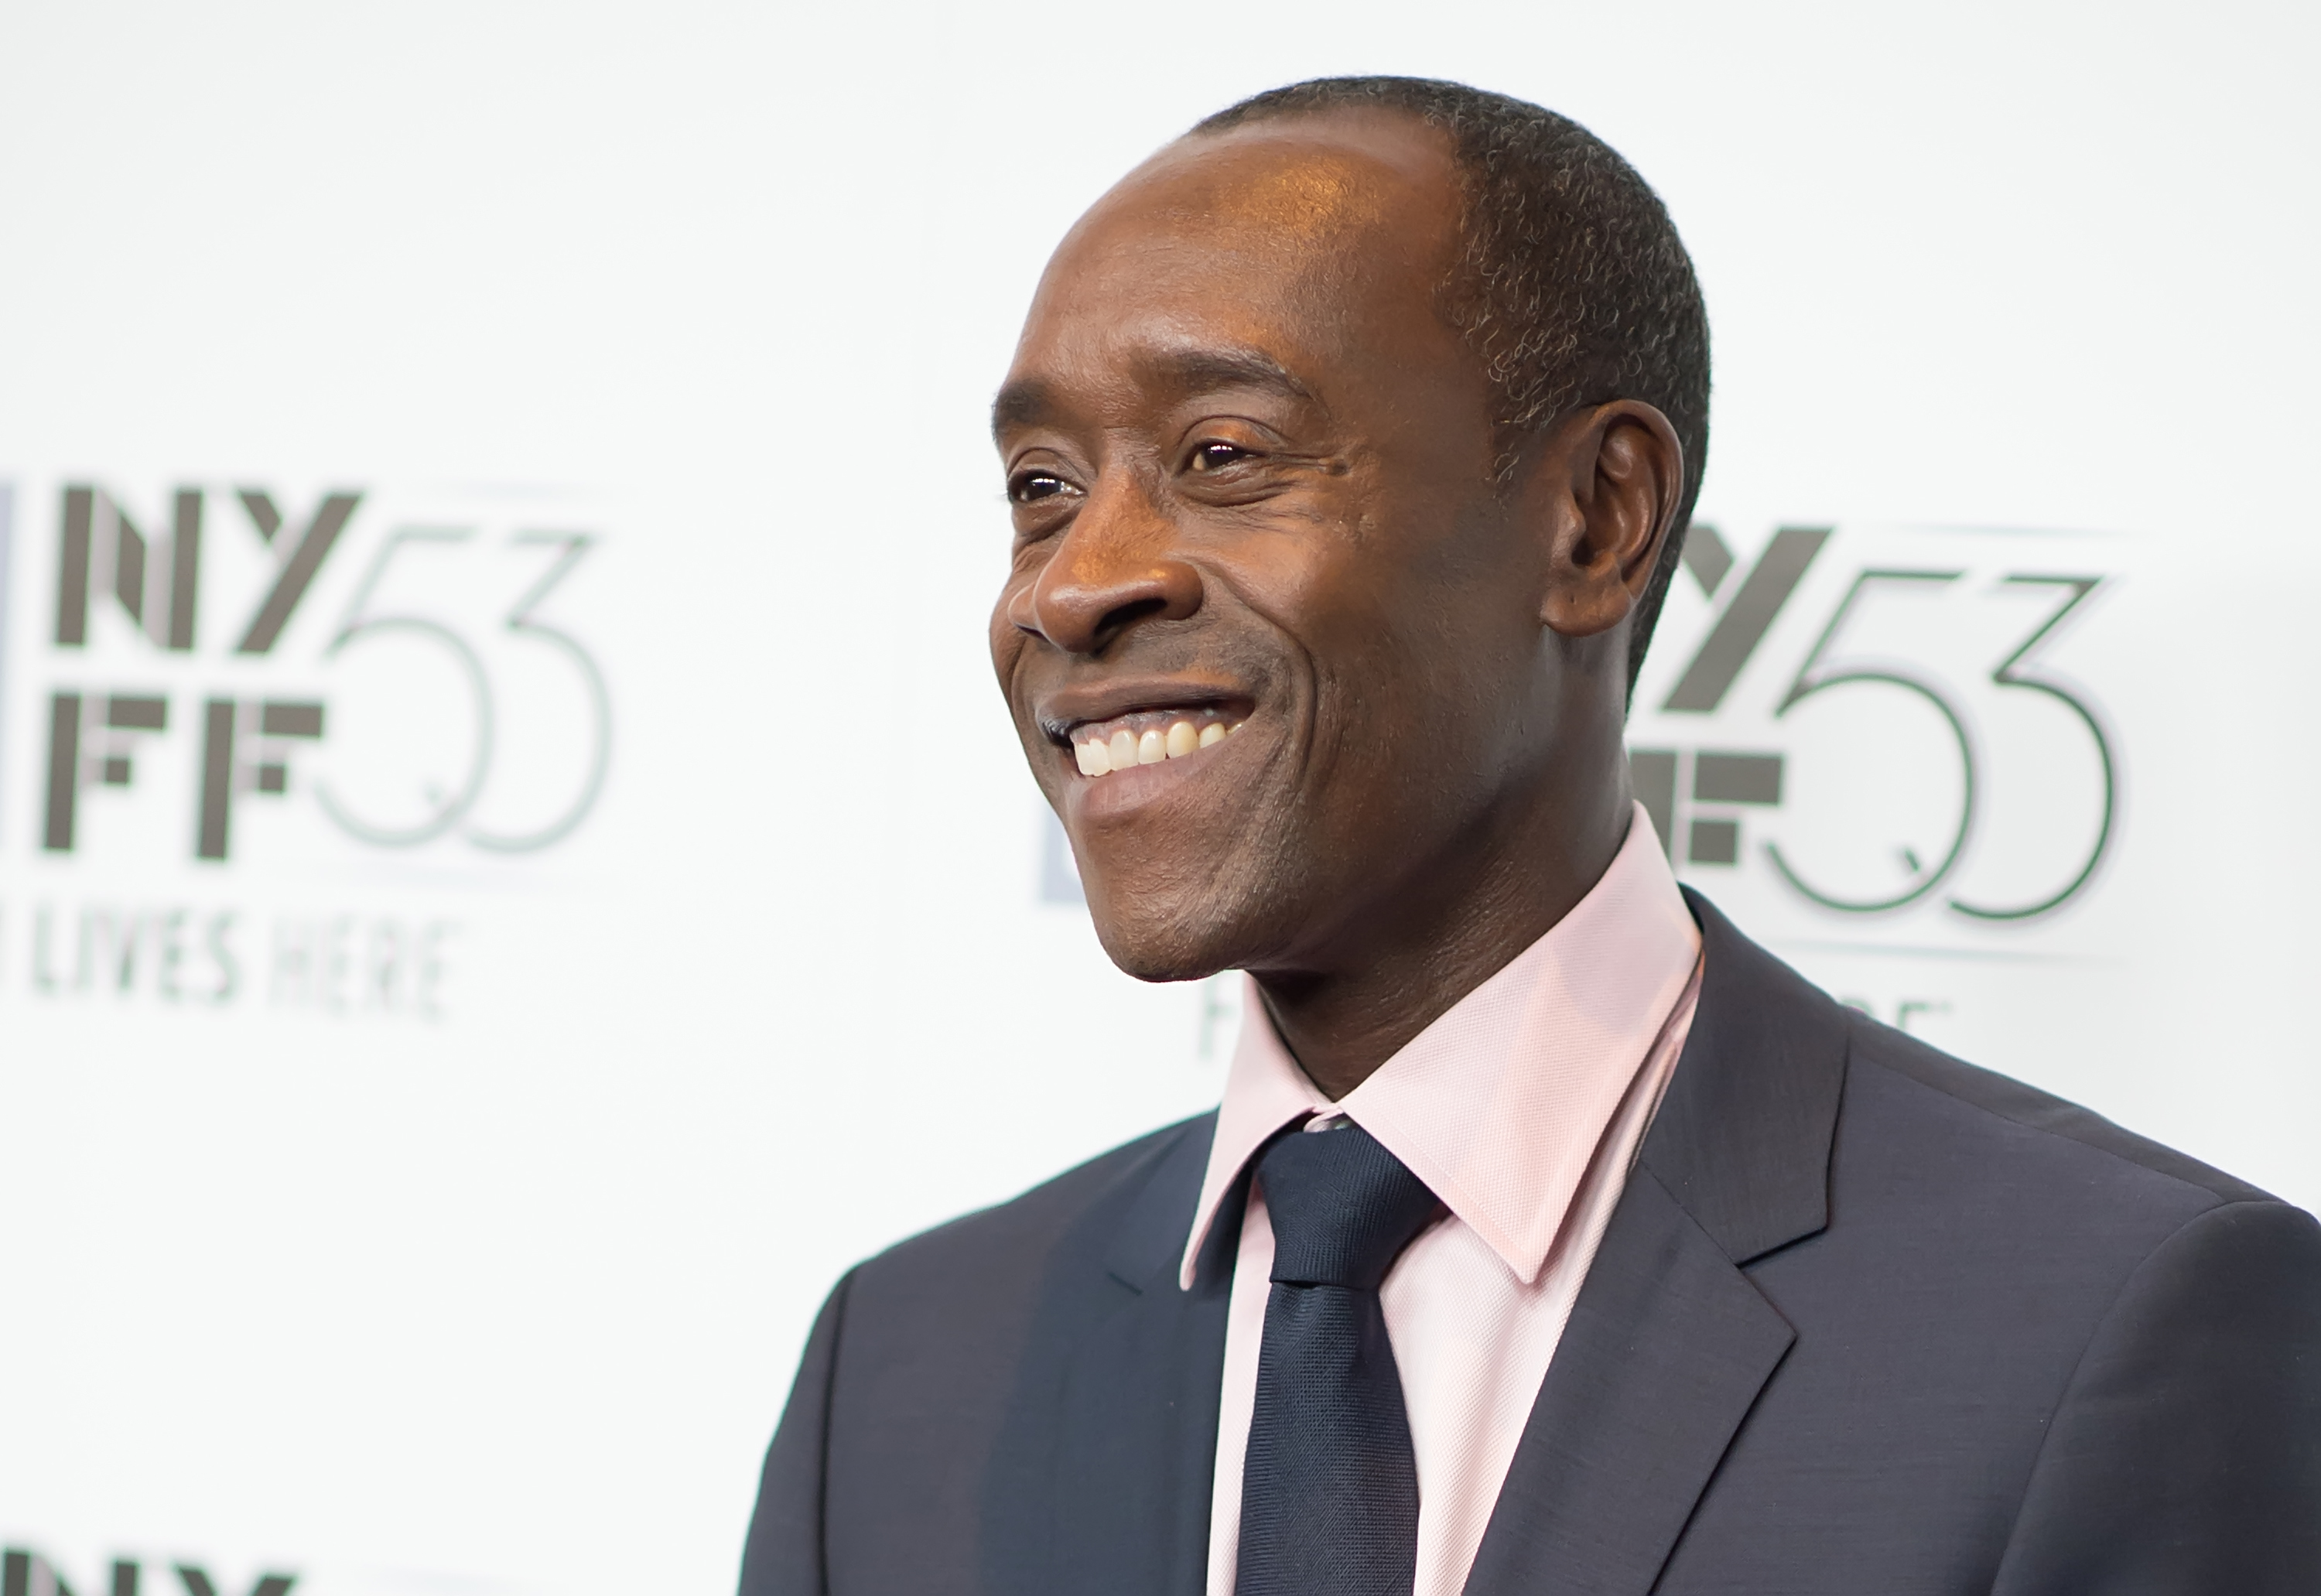 Actor Don Cheadle attends 53rd New York Film Festival - Closing Night Gala in New York City on Oct. 10, 2015.